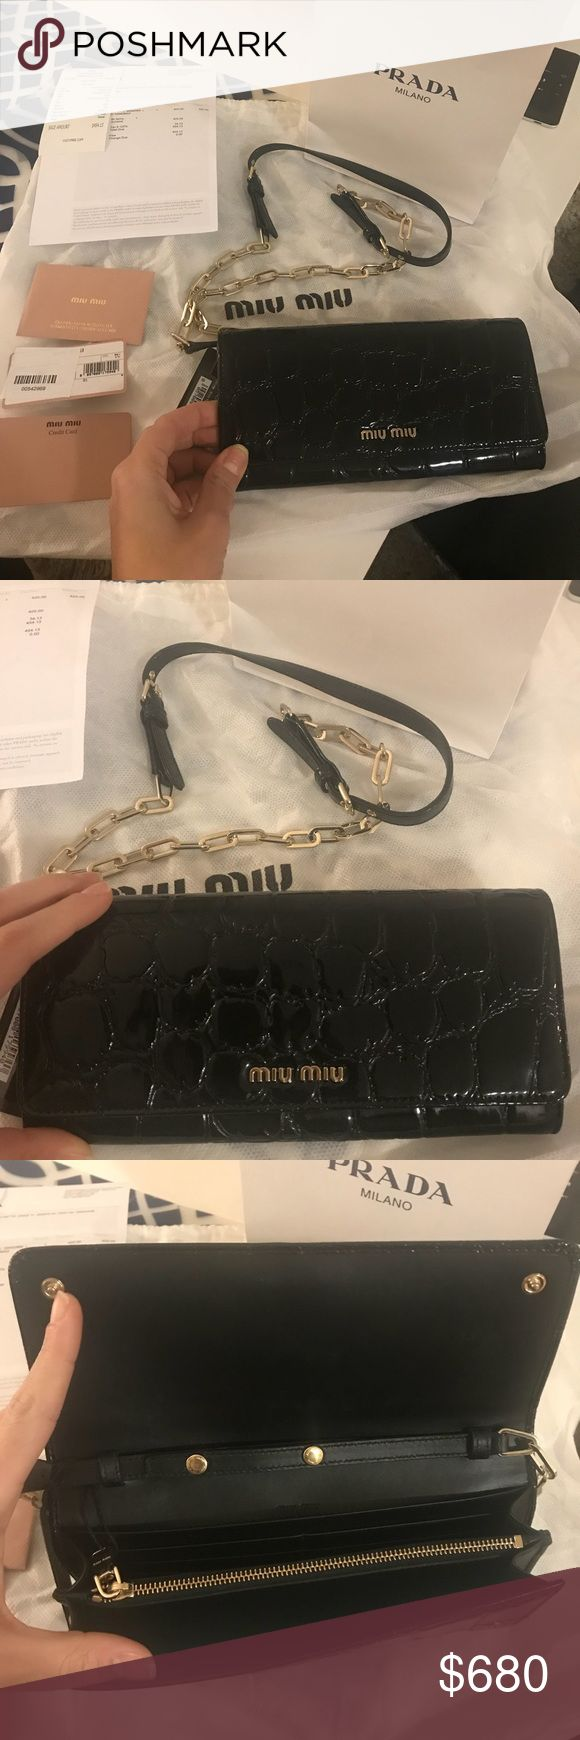 NWT Miu Miu WOC Gorgeous brand new wallet on chain, can be worn as evening clutch with strap taken off or as evening crossbody with metal strap. Black patent leather with silver details. Miu Miu Bags